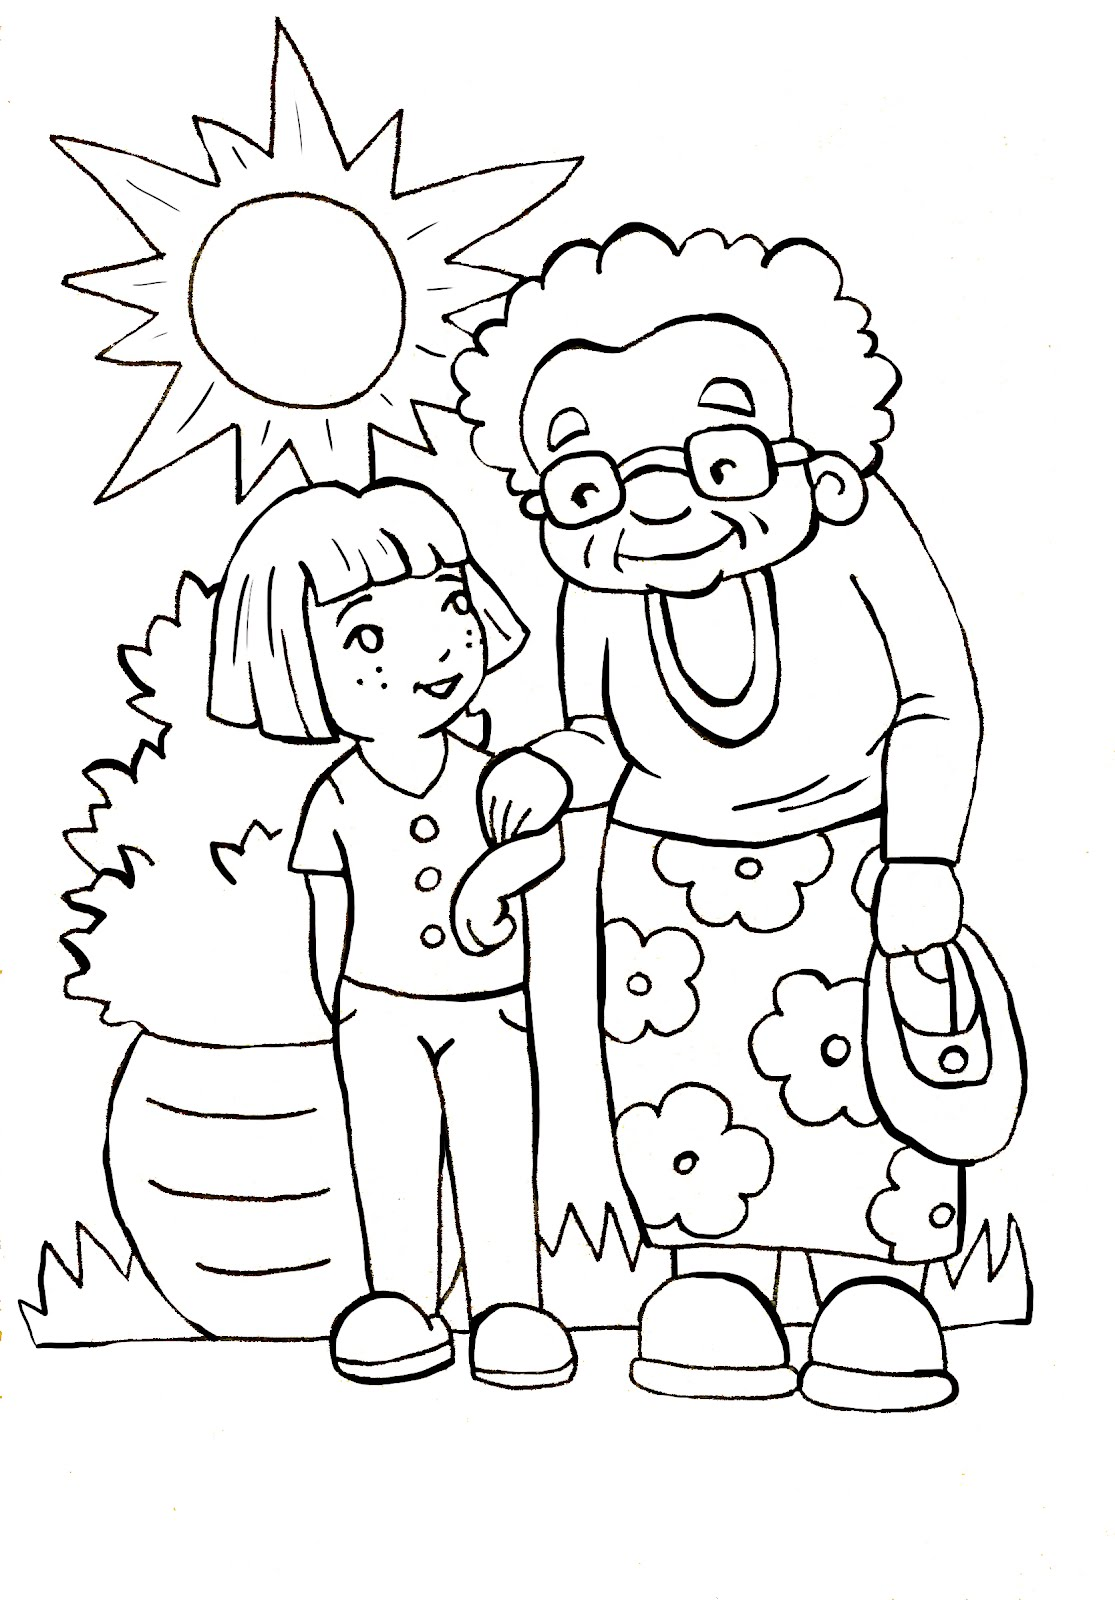 Good Lds Coloring Pages 60 For Your Picture Coloring Page With Lds